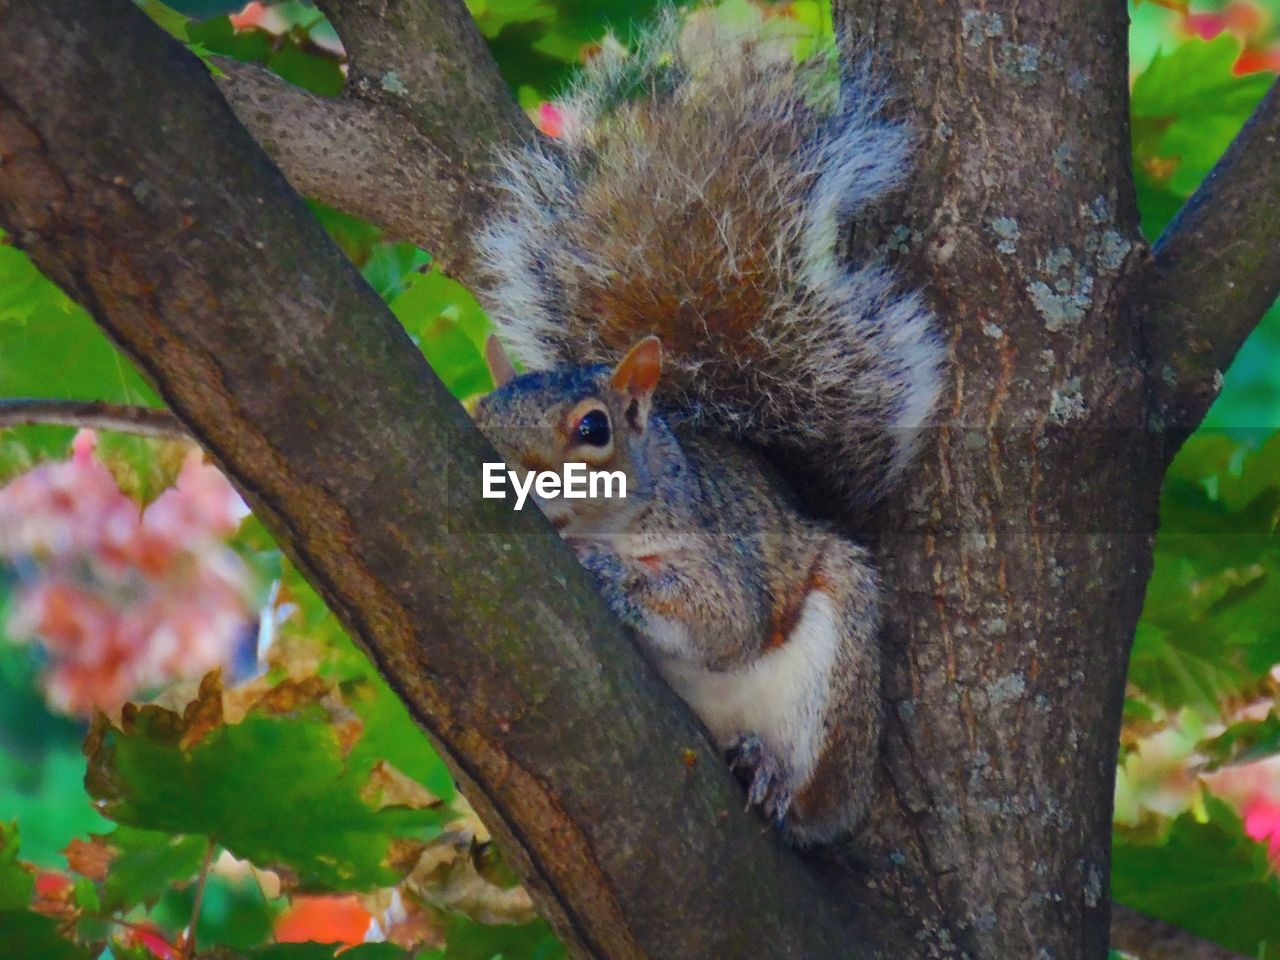 tree, rodent, squirrel, animal, plant, animal wildlife, one animal, animal themes, mammal, tree trunk, trunk, animals in the wild, branch, no people, focus on foreground, close-up, day, nature, vertebrate, outdoors, whisker